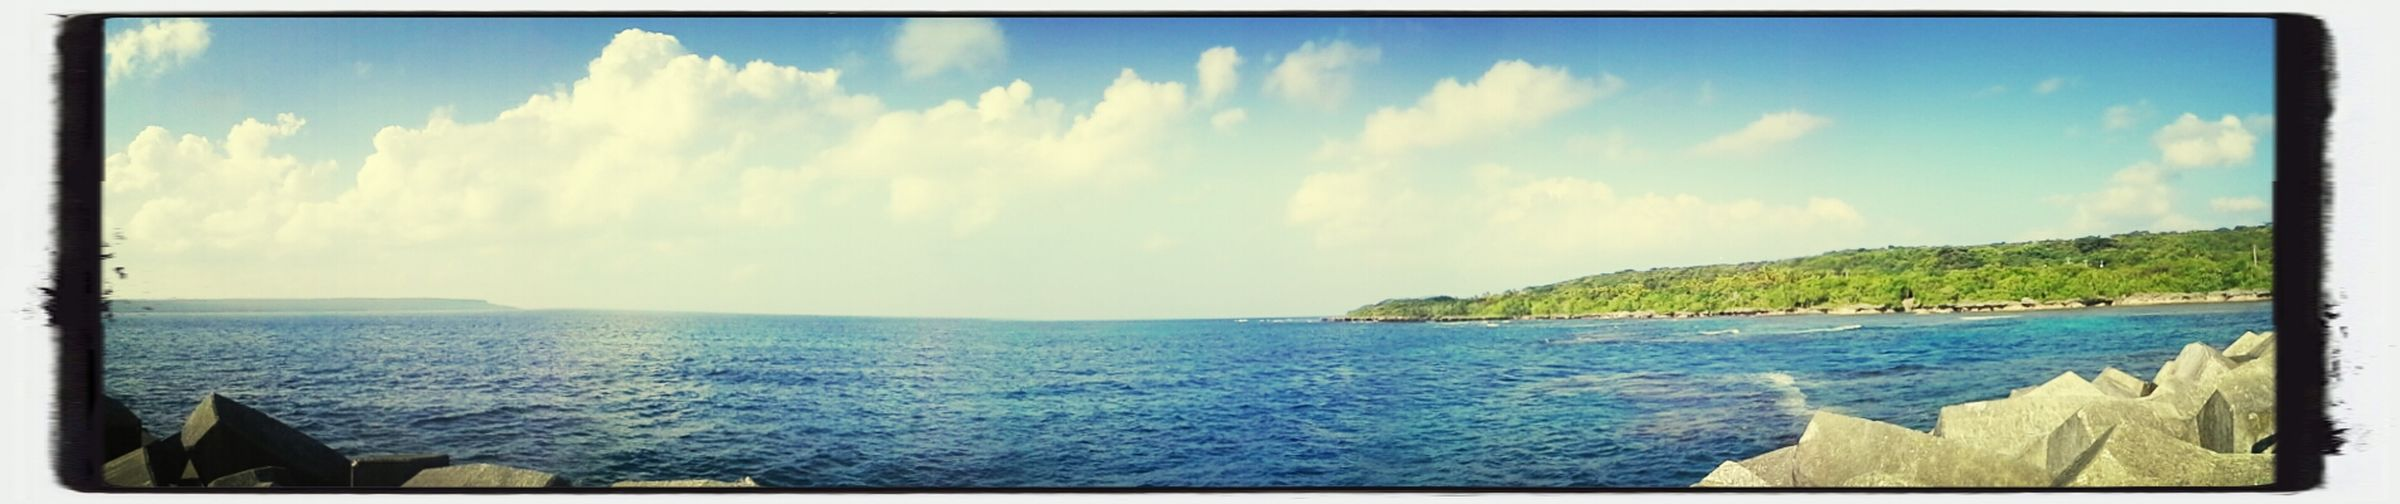 Lifou 2014 Sea View New Caledonia